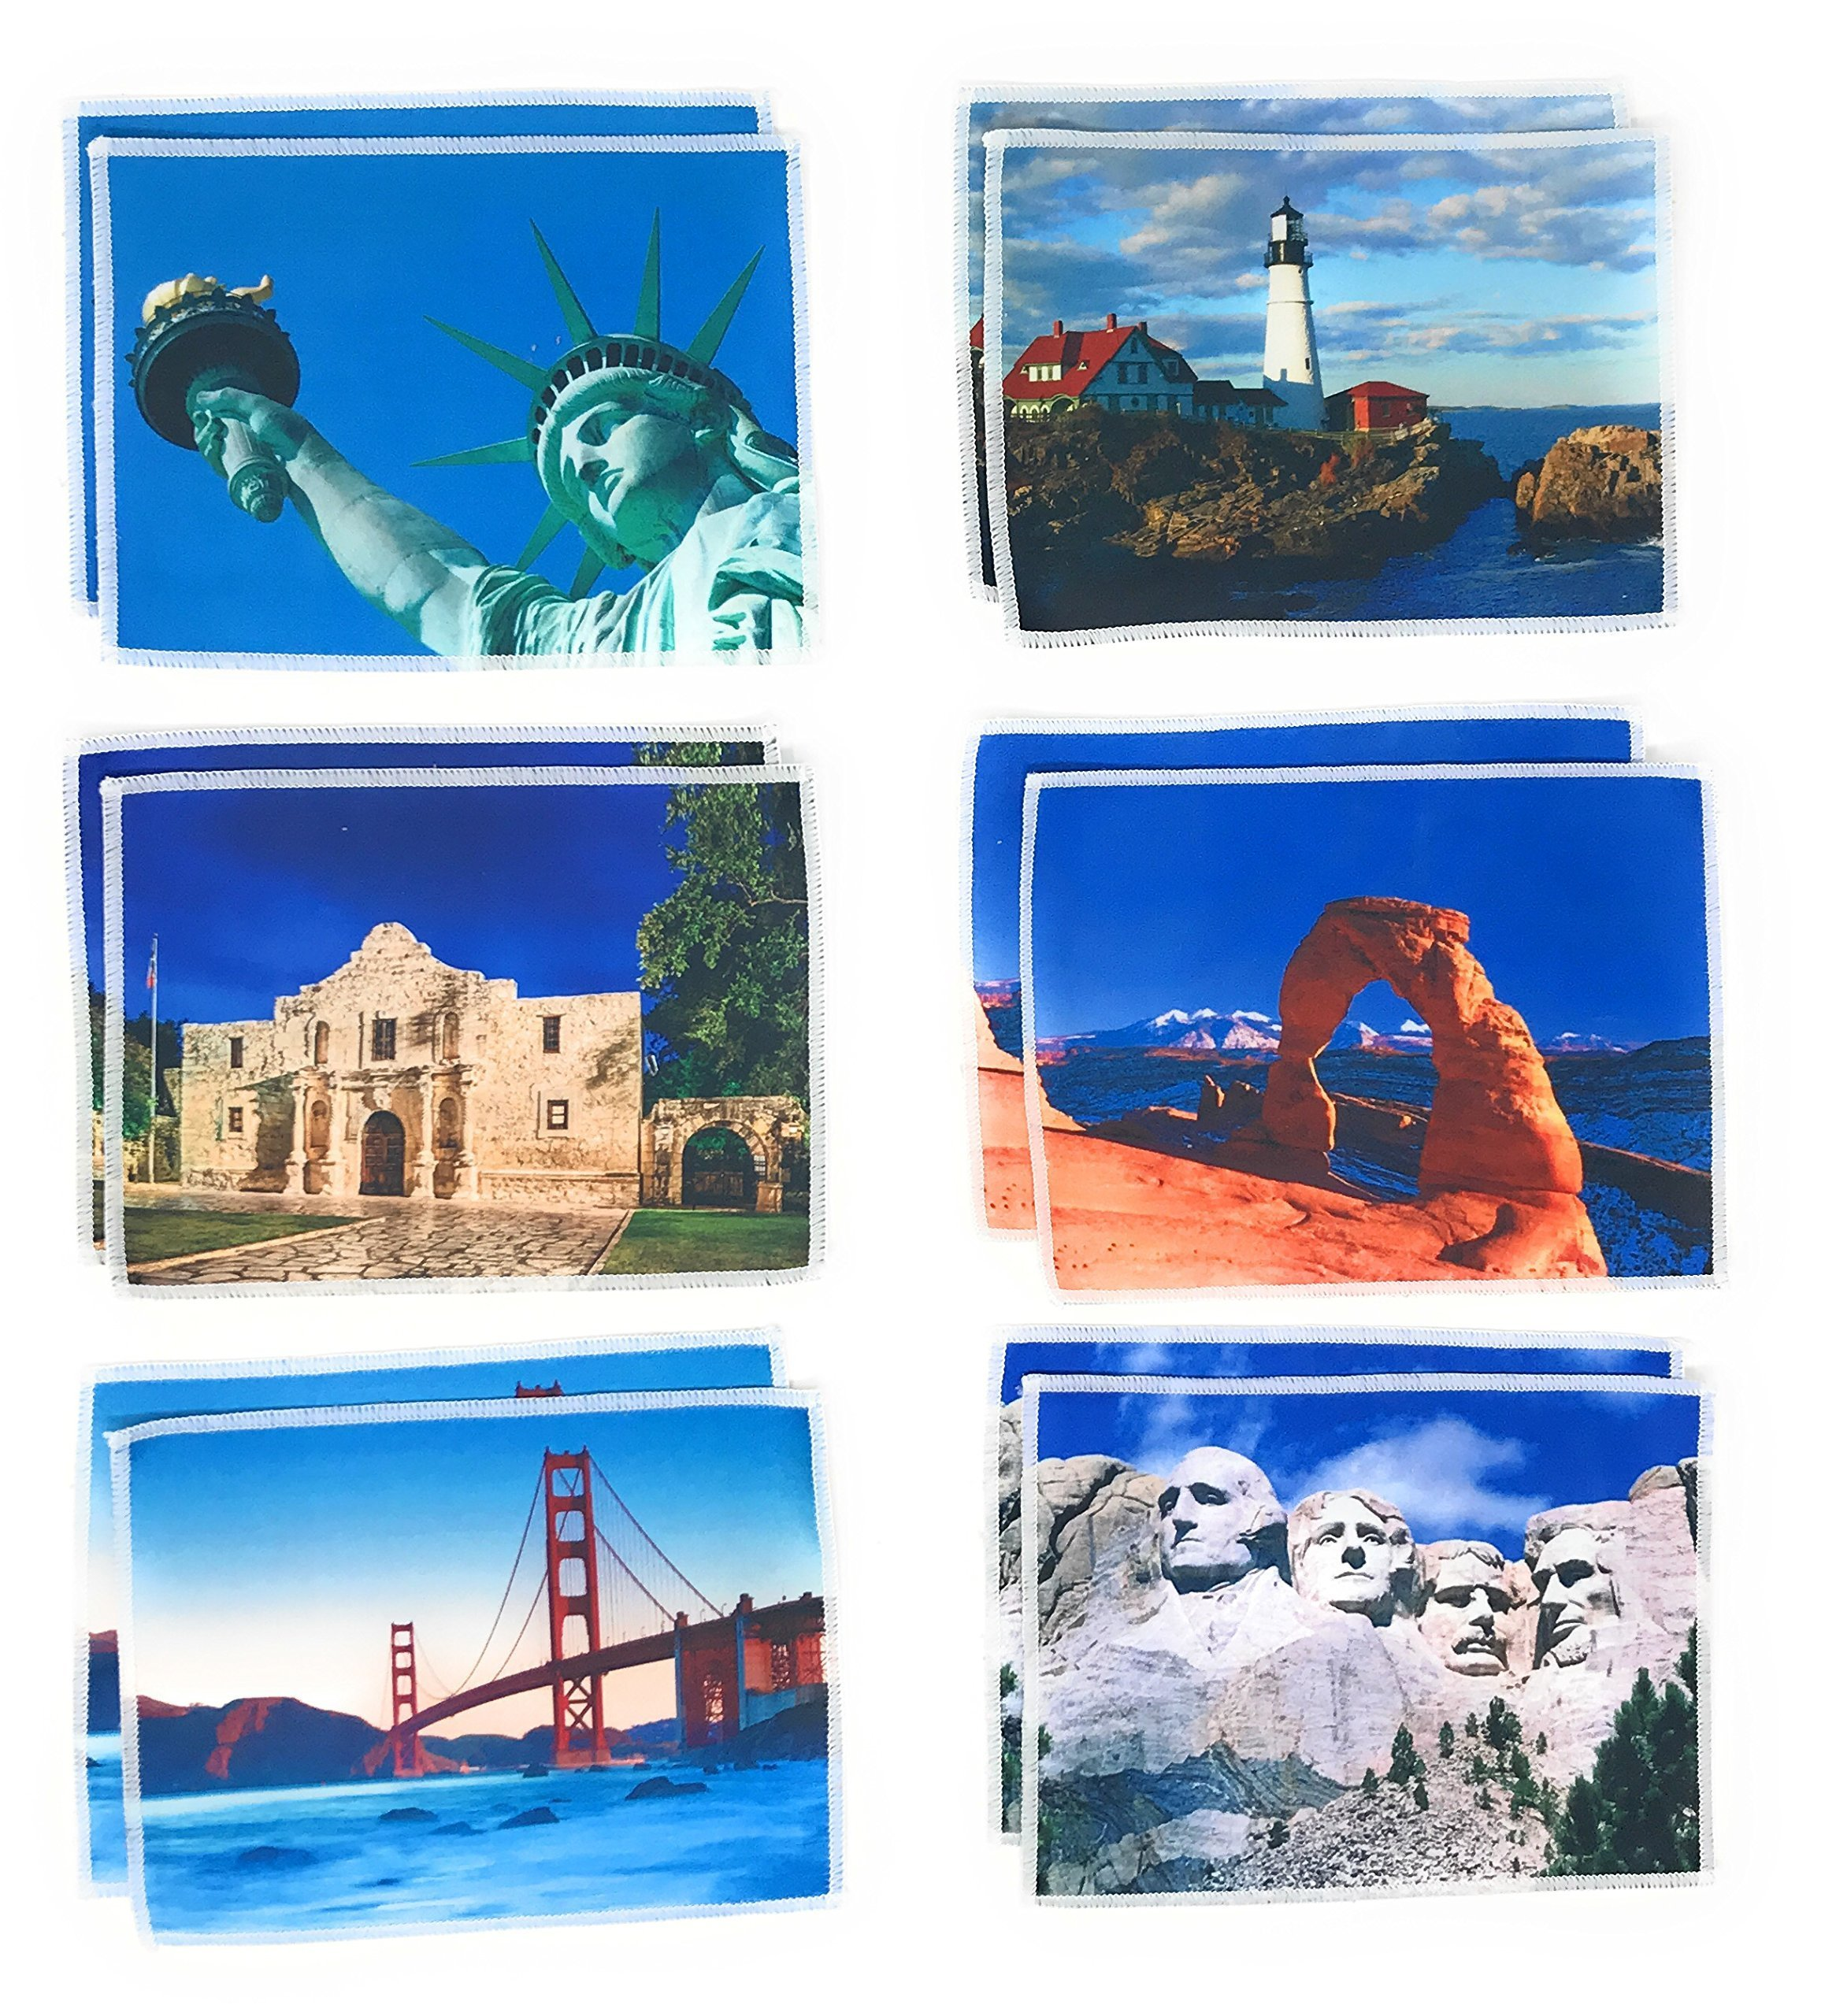 12 Bulk Microfiber Tech Screen Cleaning Cloths Featuring Iconic American Landmarks Monuments